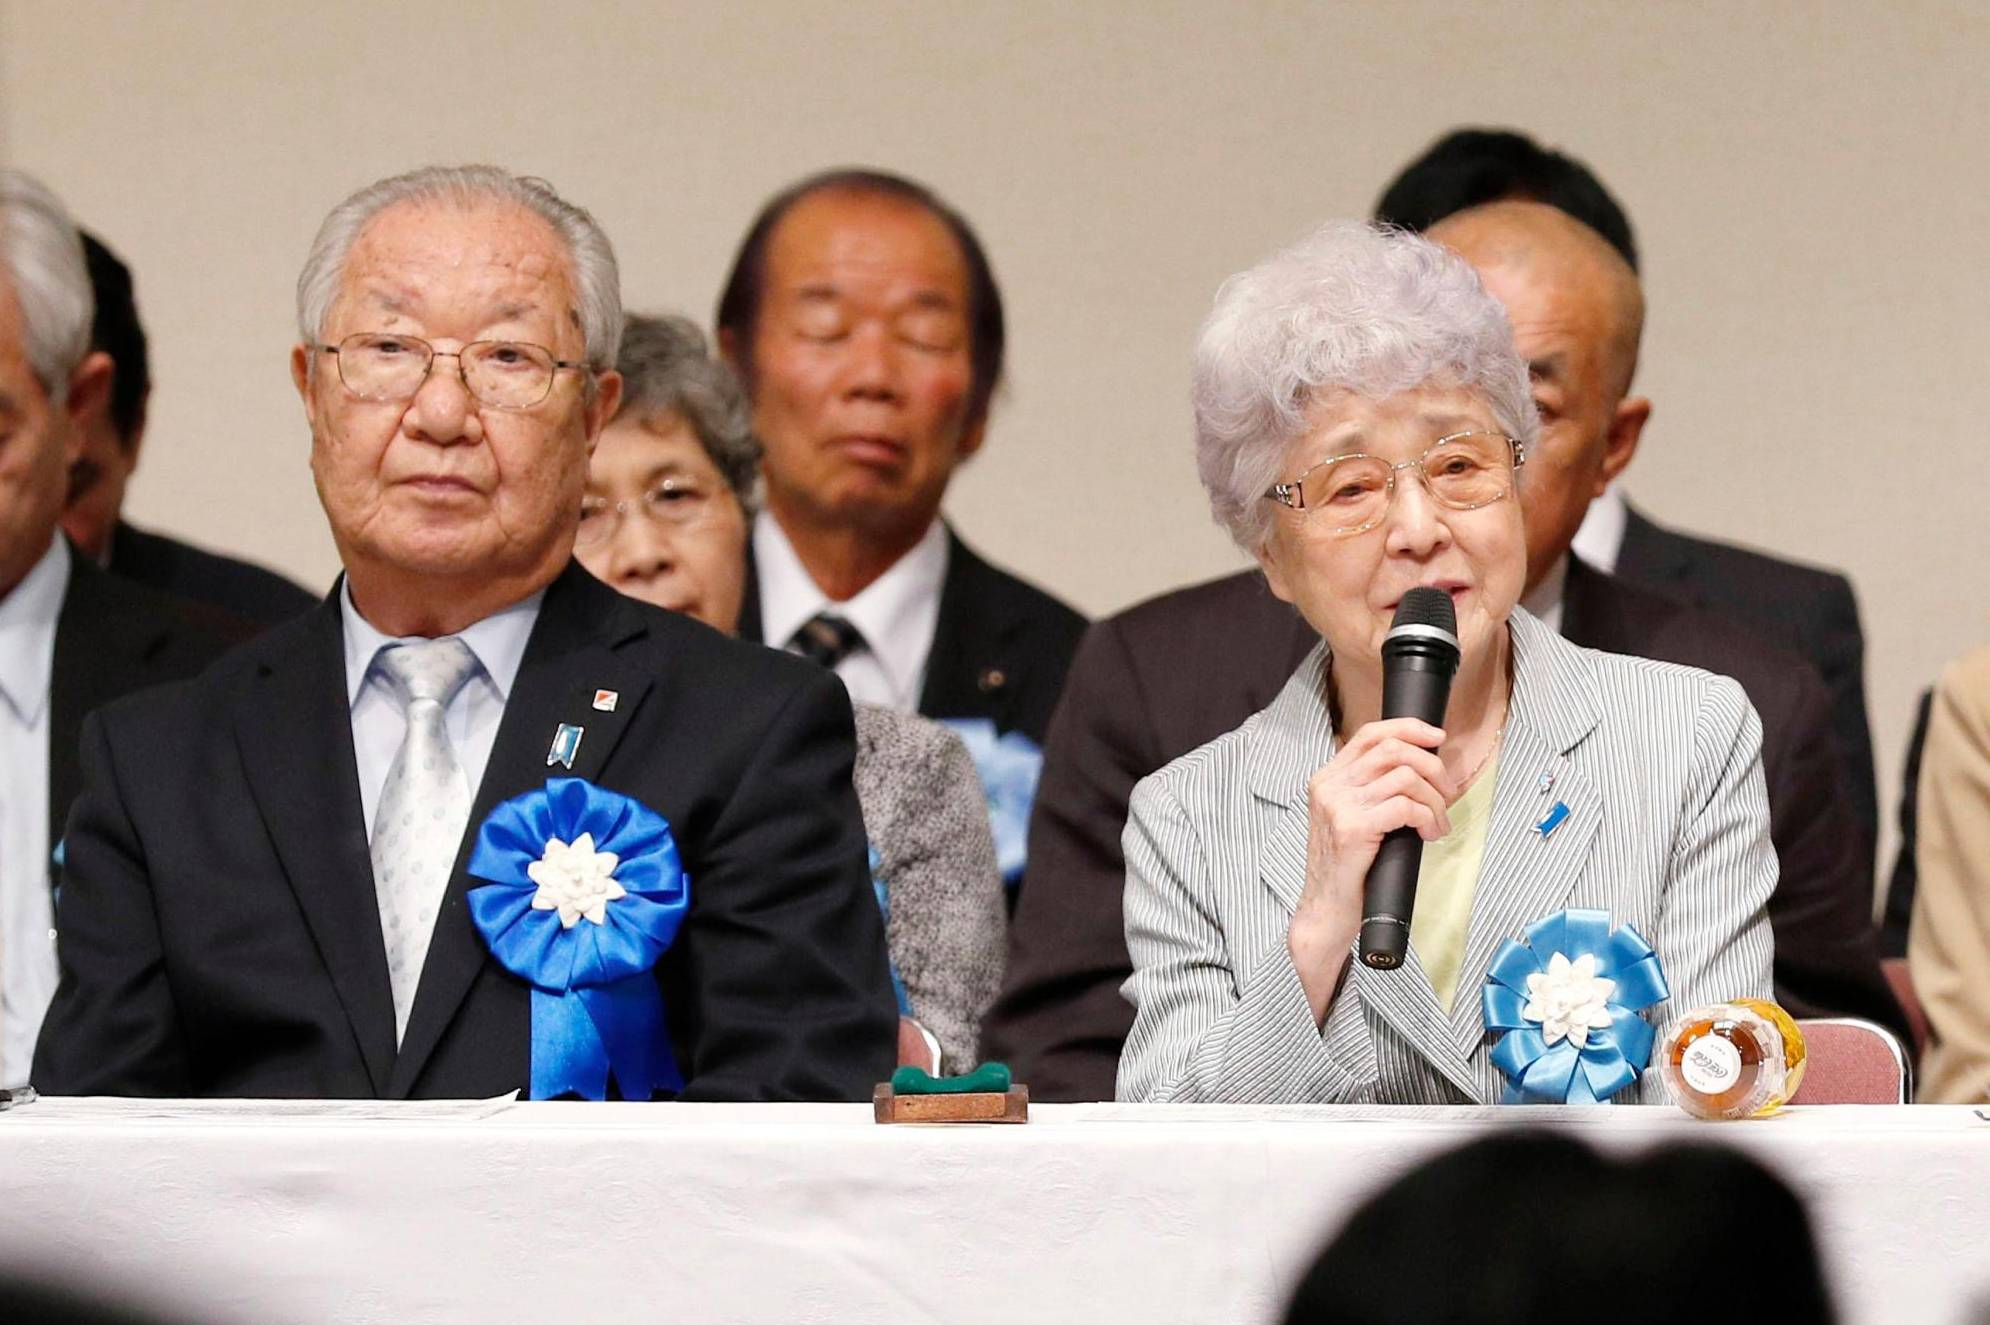 Sakie Yokota (right), the 82-year-old mother of Megumi, who was abducted in 1977, speaks during an event focusing on Japanese nationals abducted to North Korea on April 22 in Tokyo's Chiyoda Ward as Shigeo Iizuka, who heads a group representing abductees' families, looks on. | KYODO